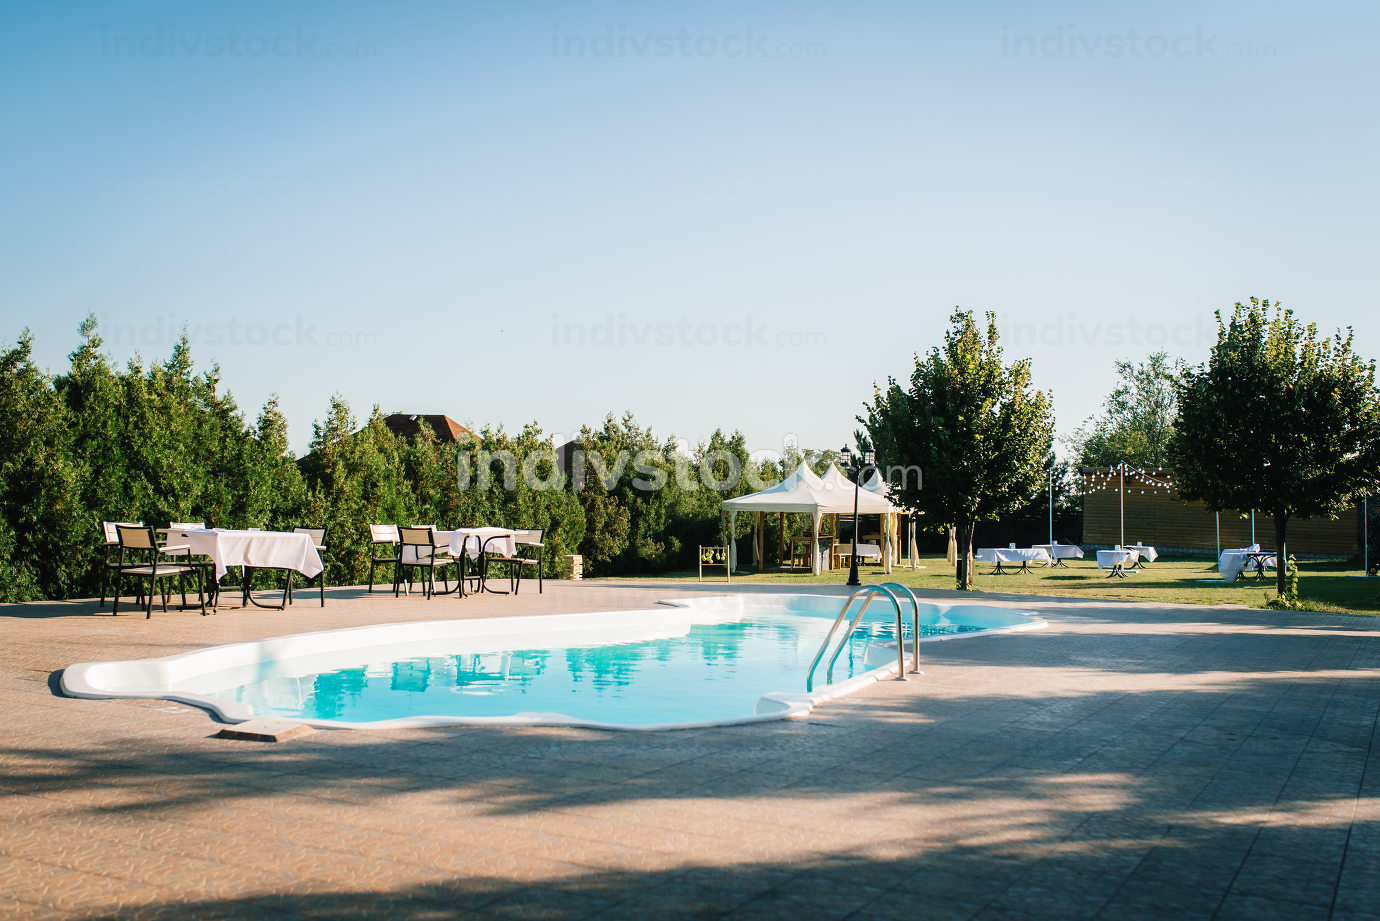 blue outdoor pool in the garden surrounded by trees